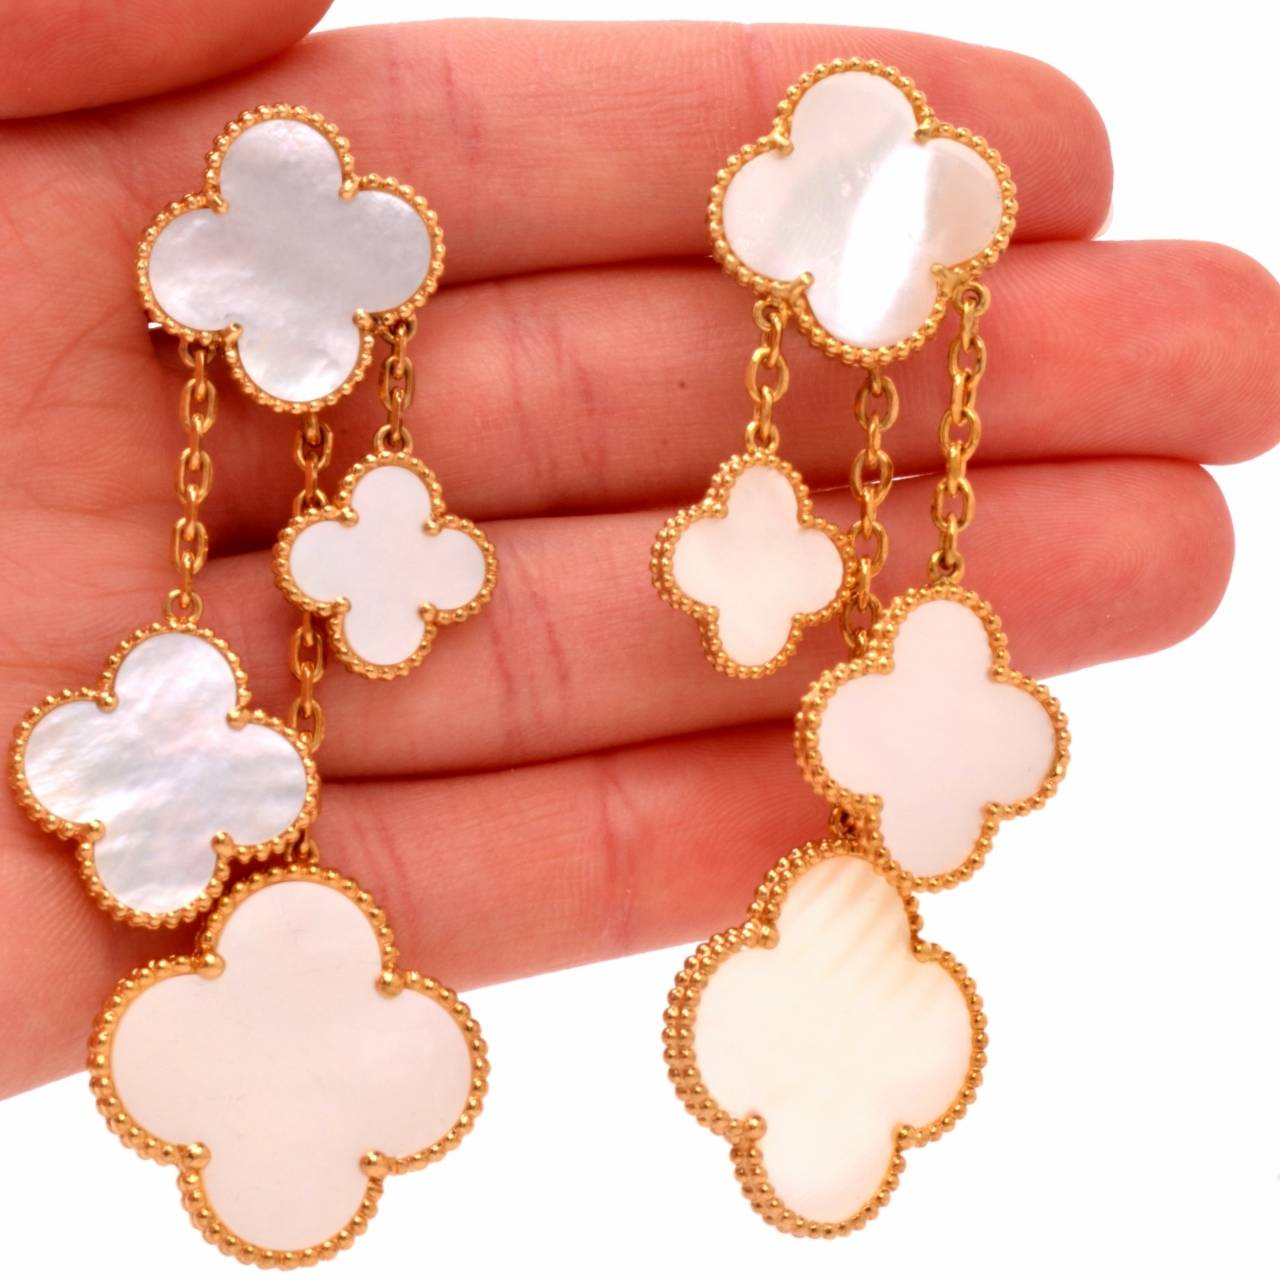 Van Cleef & Arpels VCA Alhambra Collection Mother-of-Pearl Gold Earrings 5